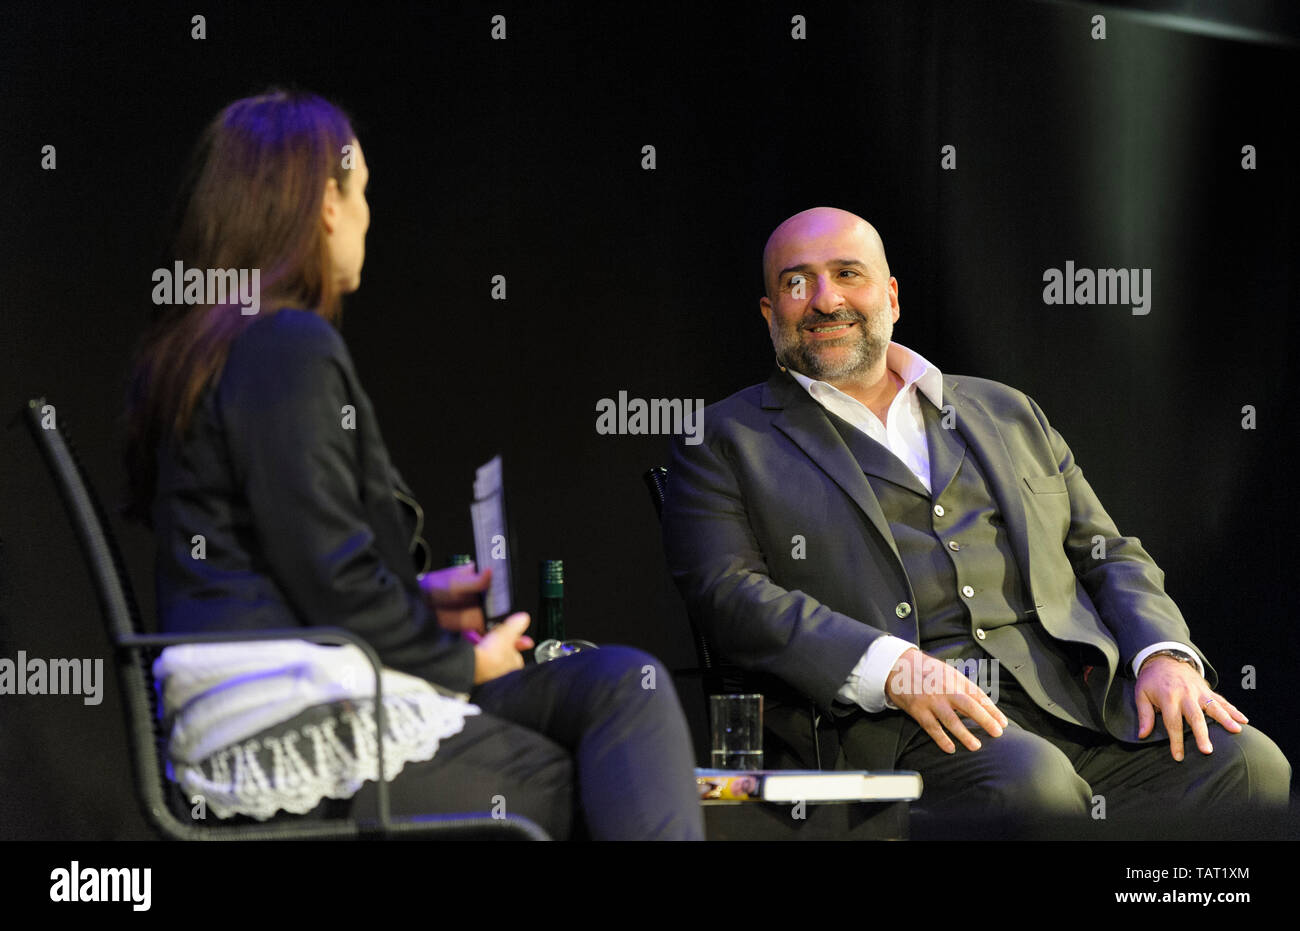 British-Iranian stand-up comedian, actor, television producer and writer Omid Djalili at the Cheltenham Literature Festival, October 9, 2014 - Stock Image